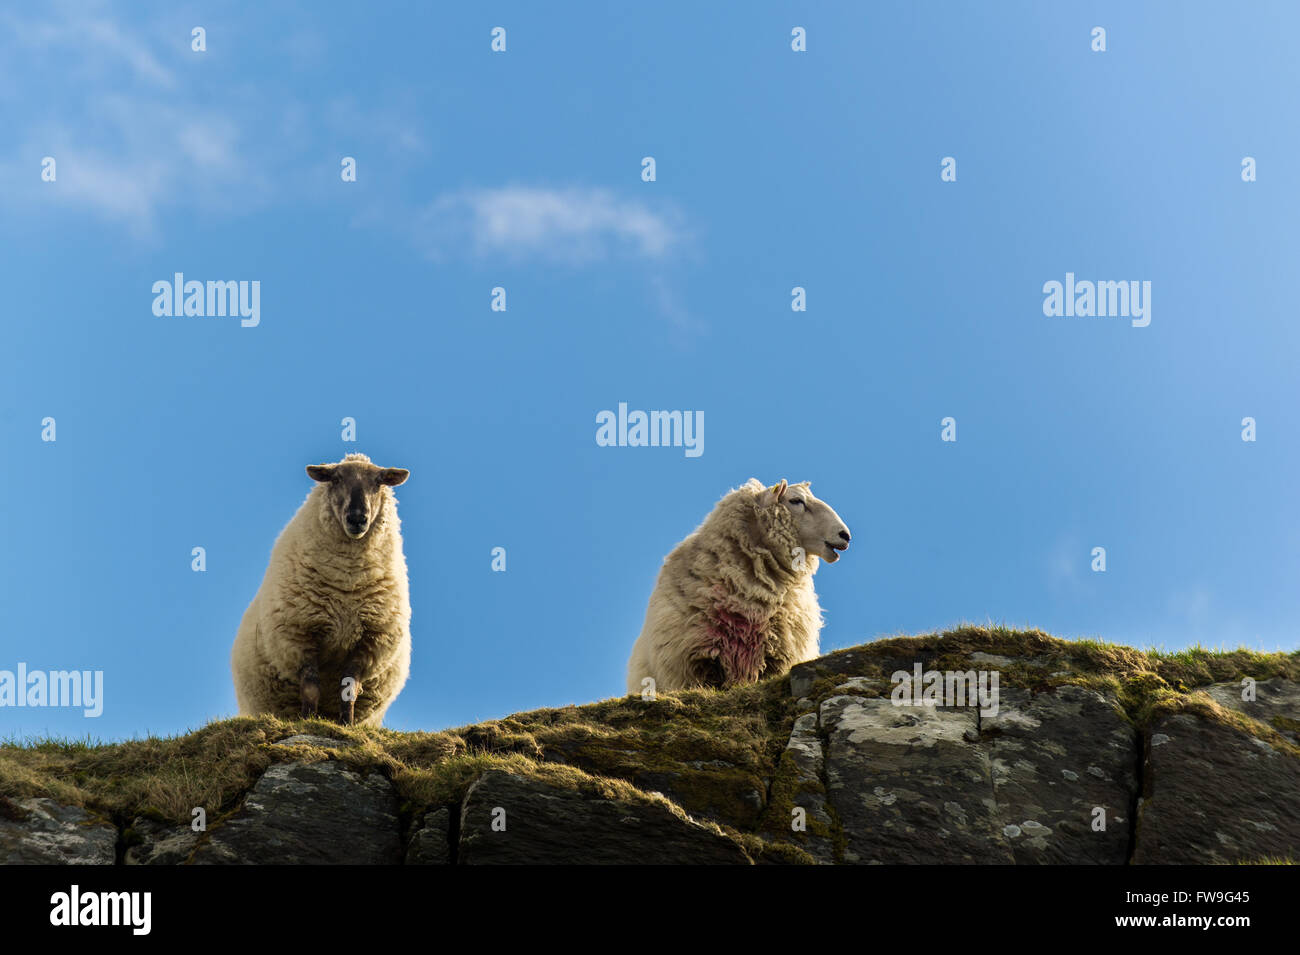 Two sheep on a rock in the Sheep's Head, West Cork, Ireland - Stock Image